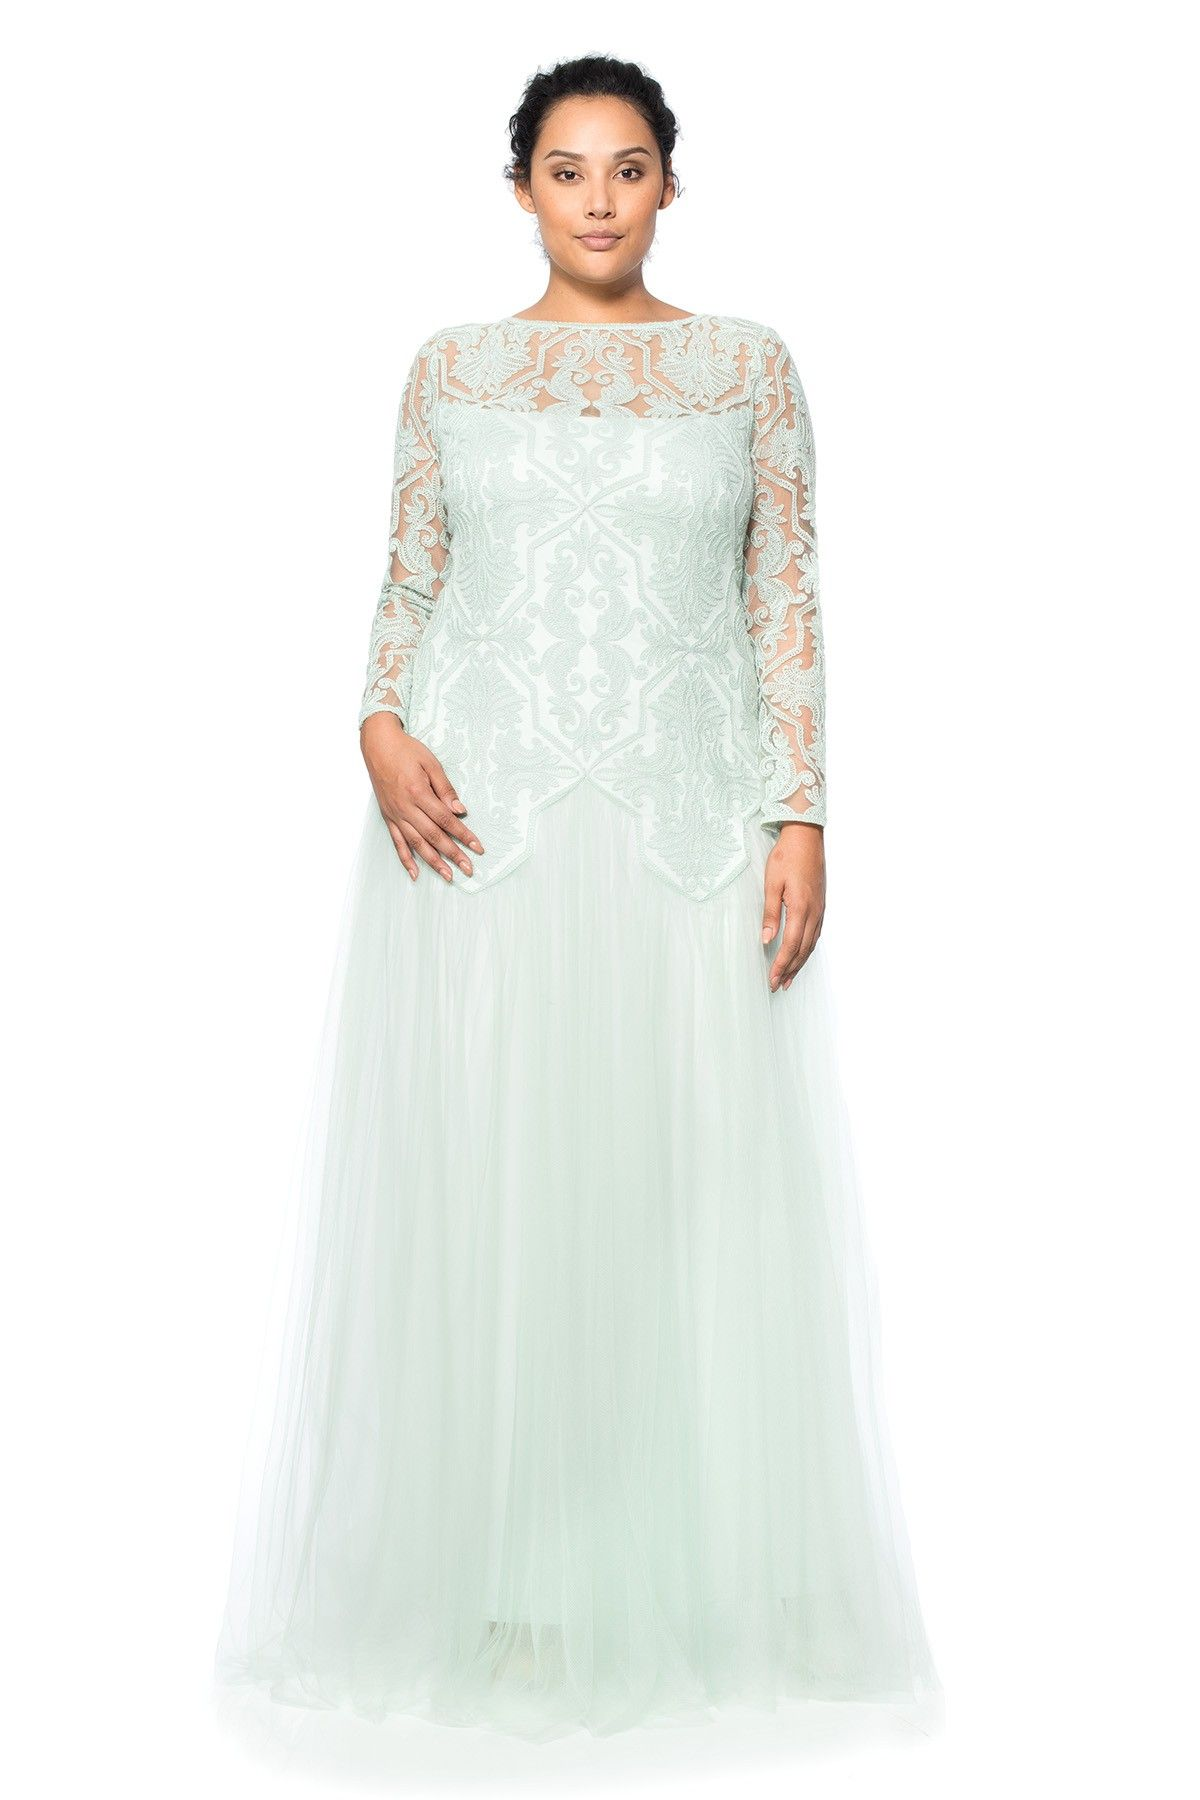 Tadashi shoji long sleeve wedding dress  Tadashi Shoji Plus Size  Sheer Illusion Long Sleeve Gown  curvy